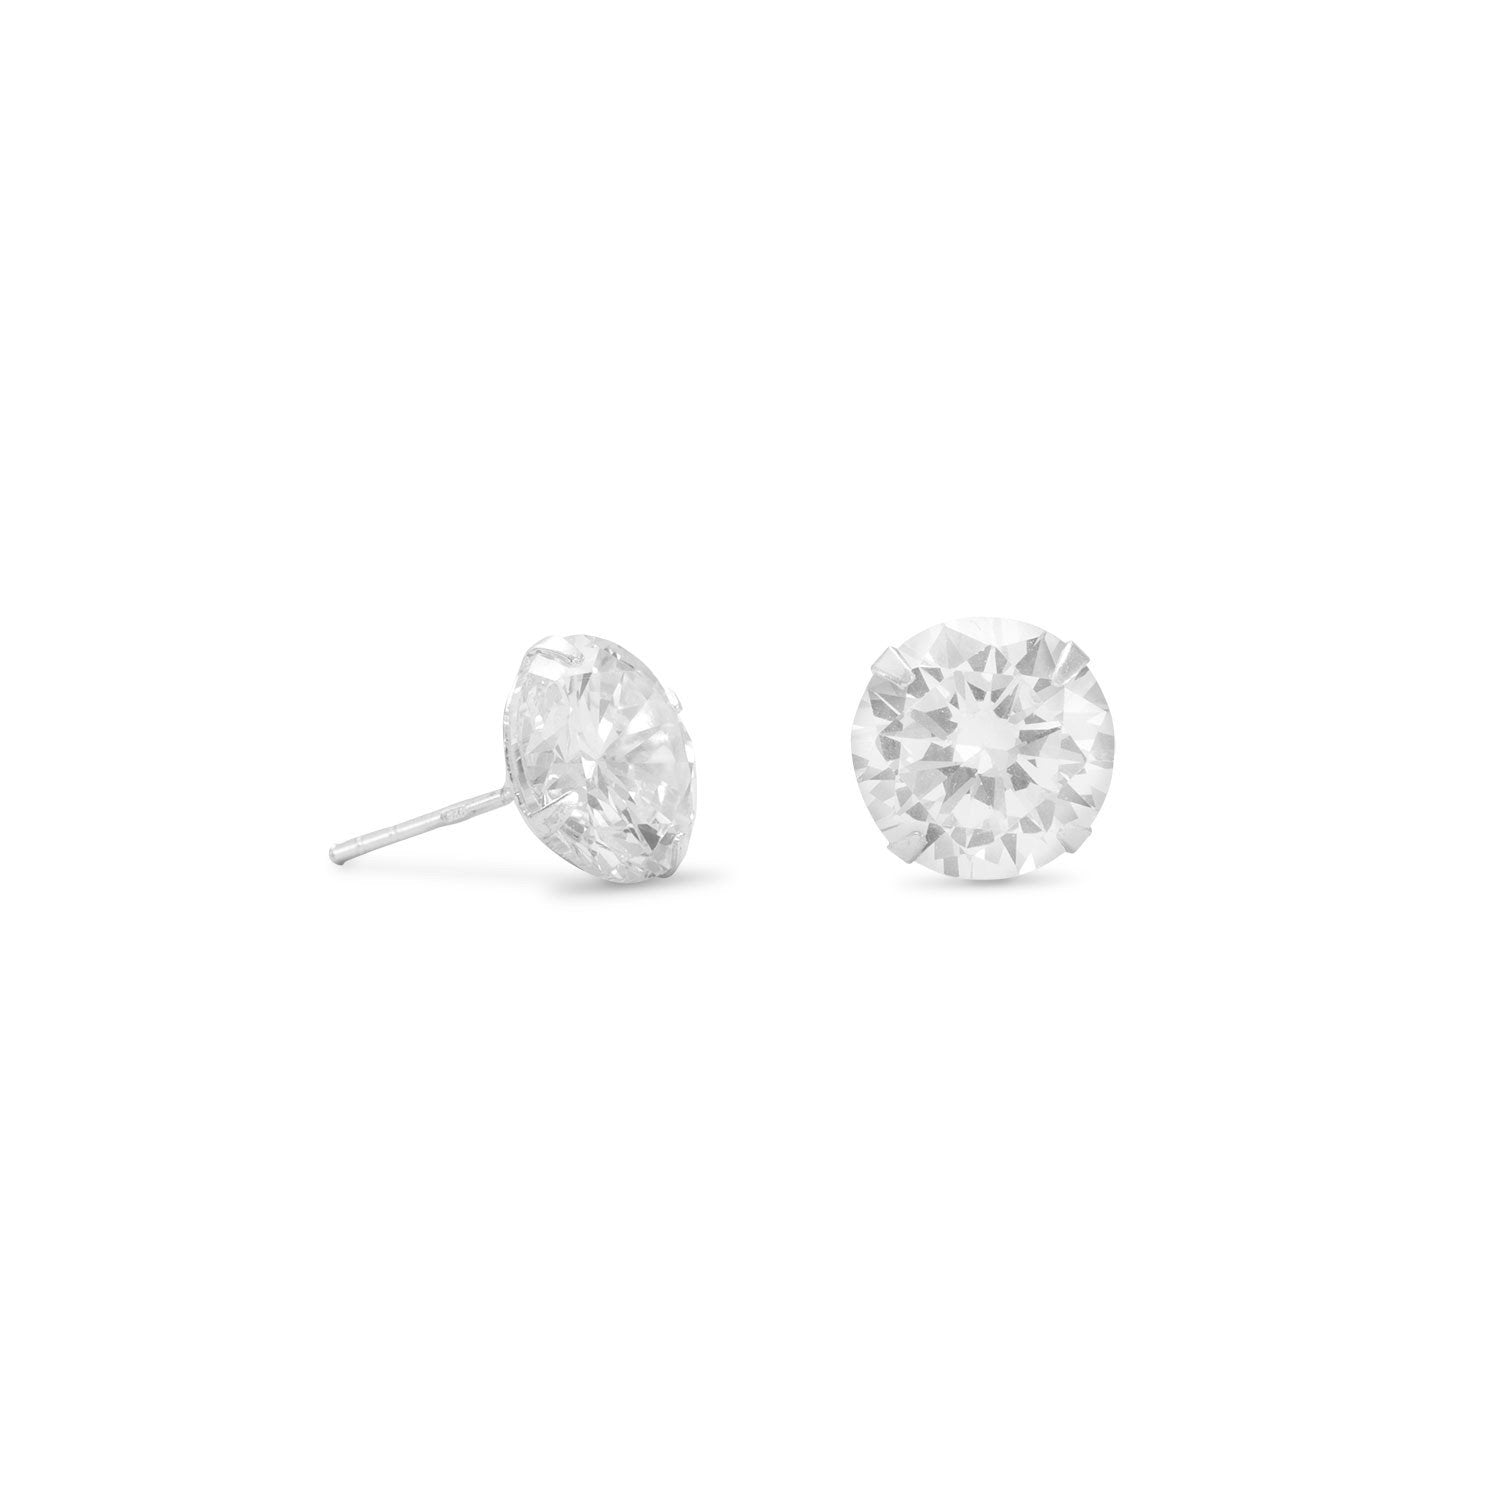 Clear CZ Stud Earrings - the-southern-magnolia-too